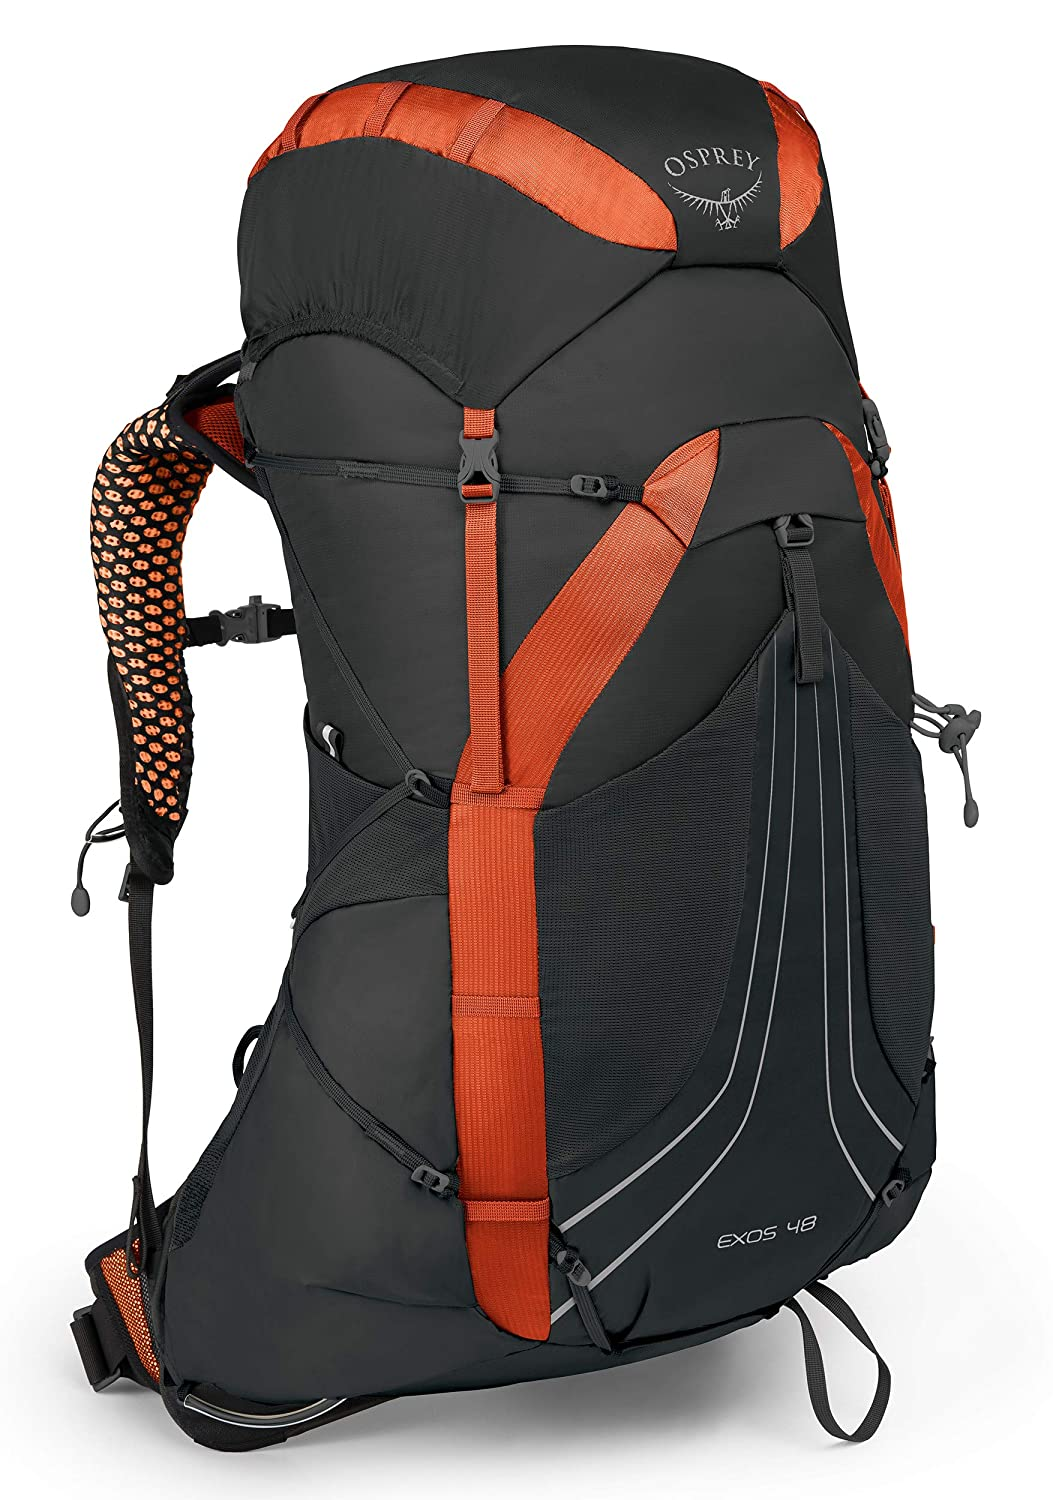 Osprey Packs Exos 48 Mens Backpacking Backpack